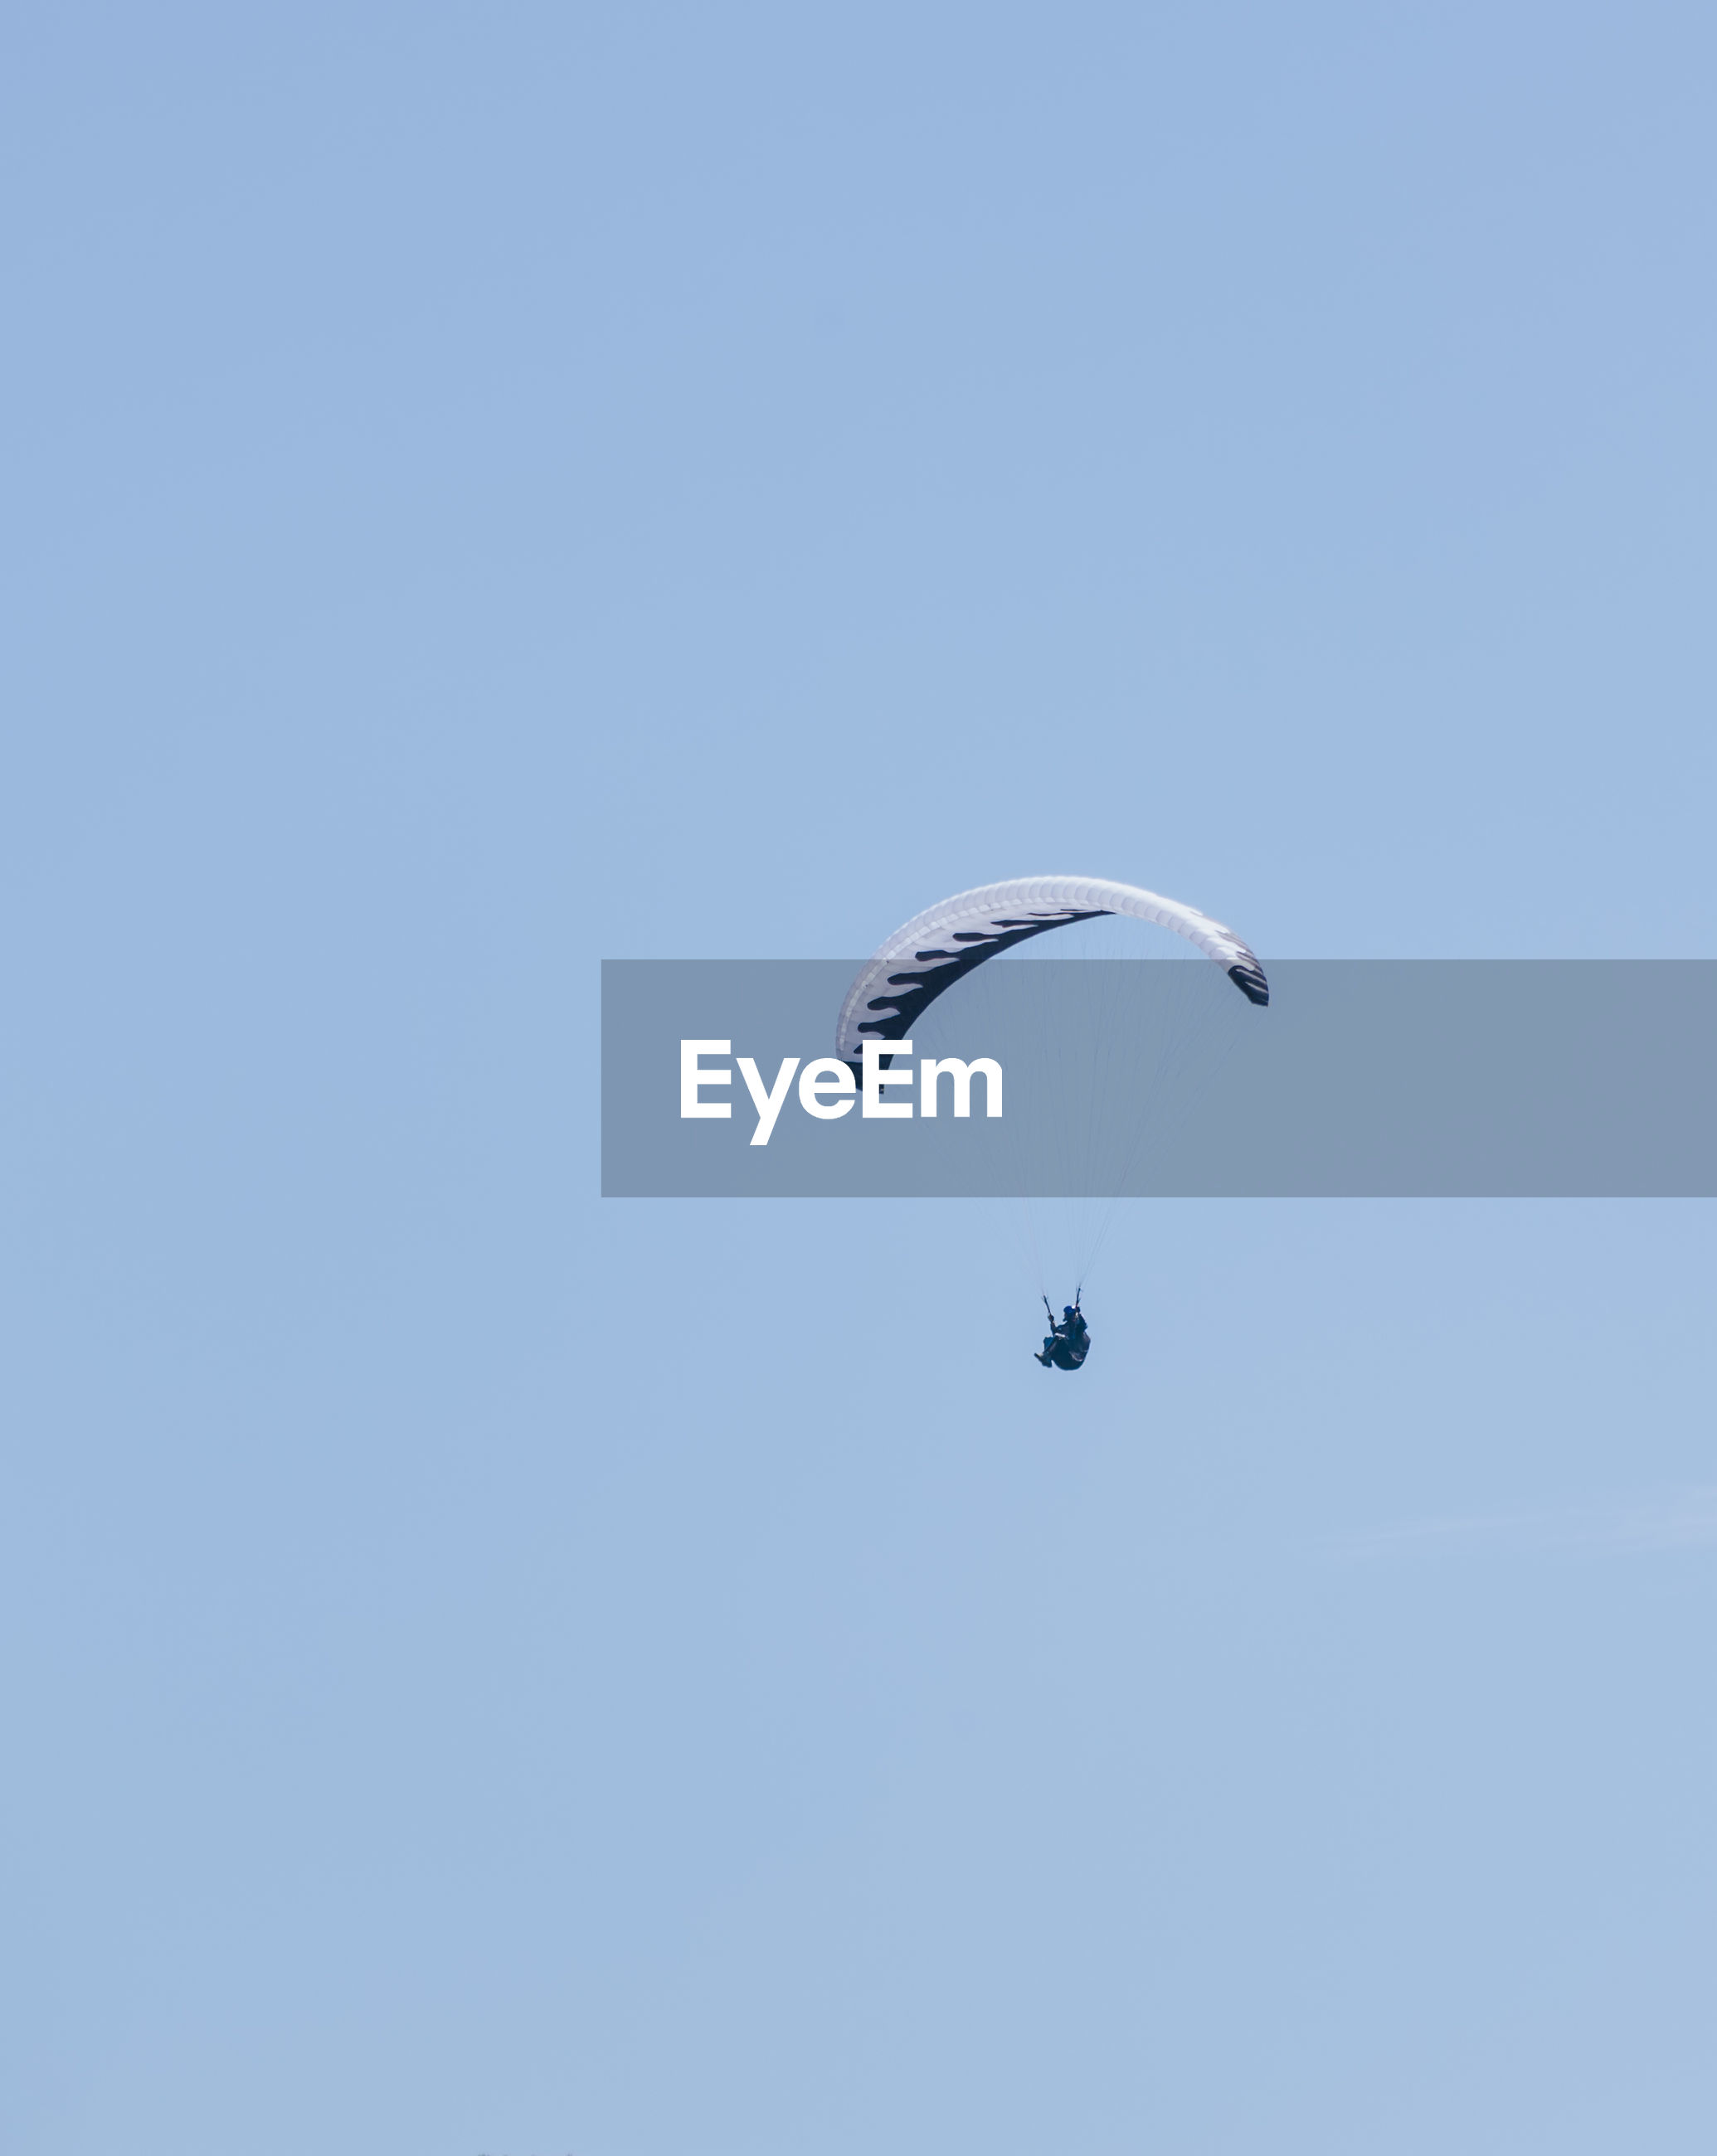 Low angle view of person paragliding in clear blue sky